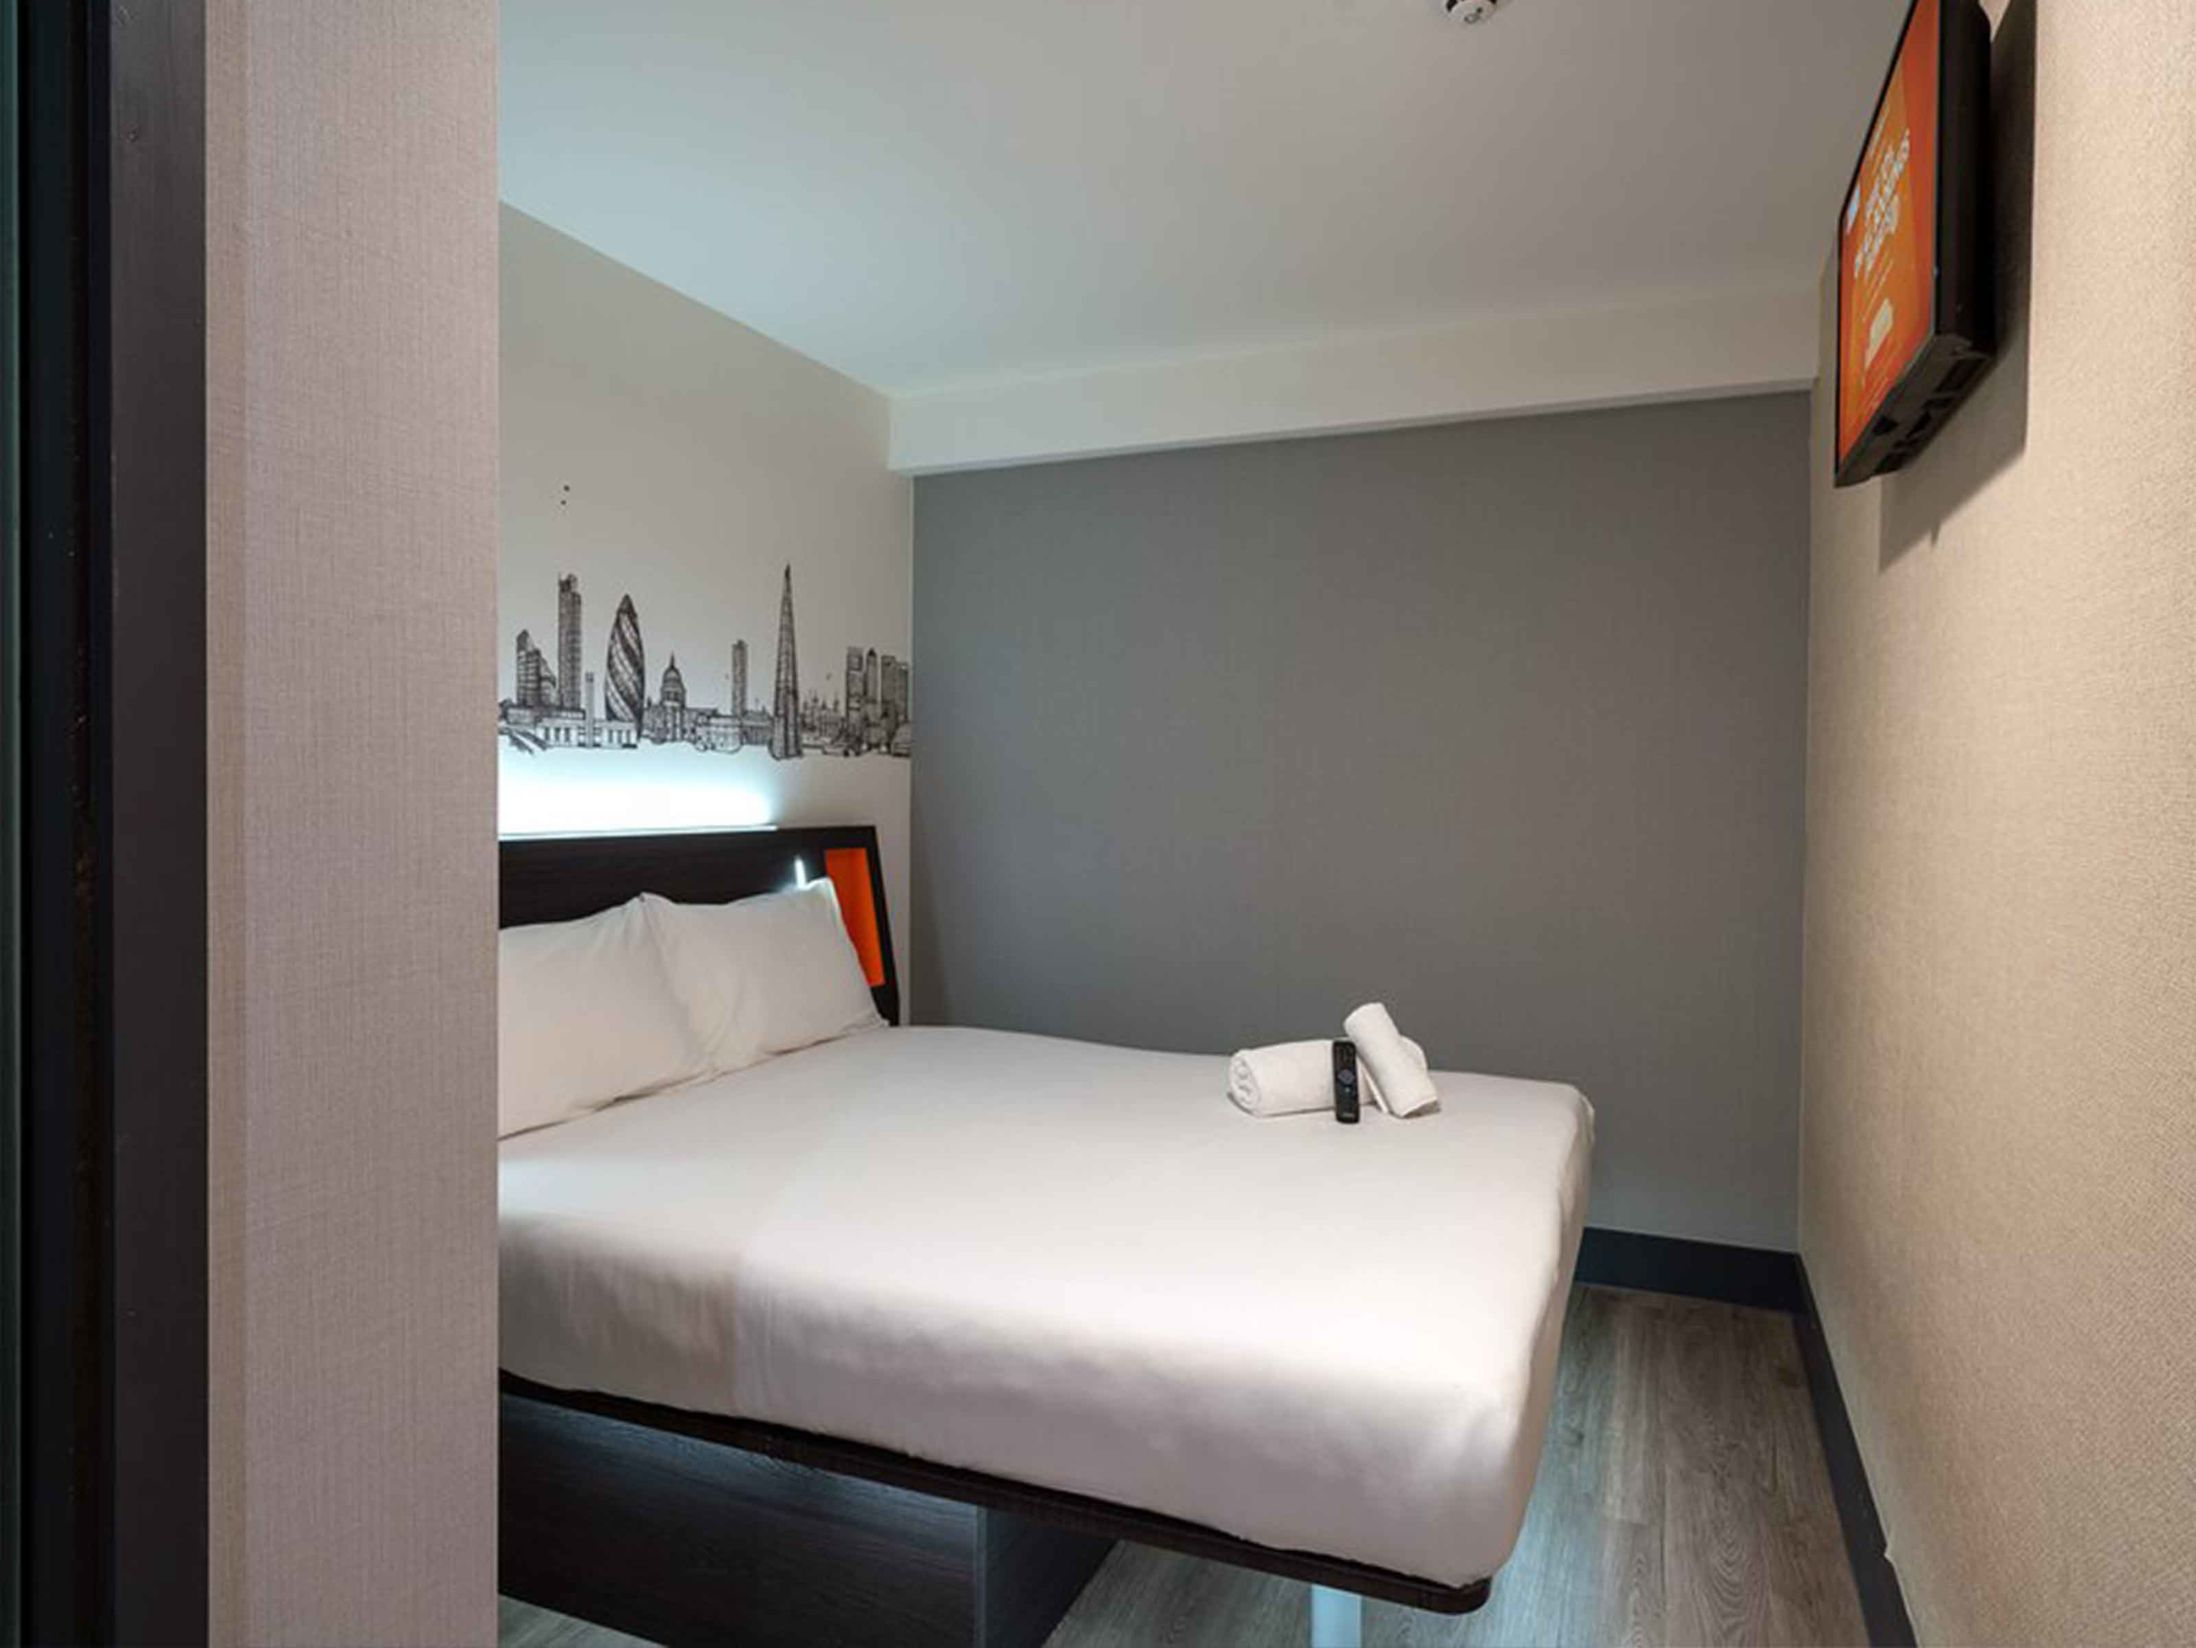 Cheap Hotels in London - easyHotel London City Shoreditch